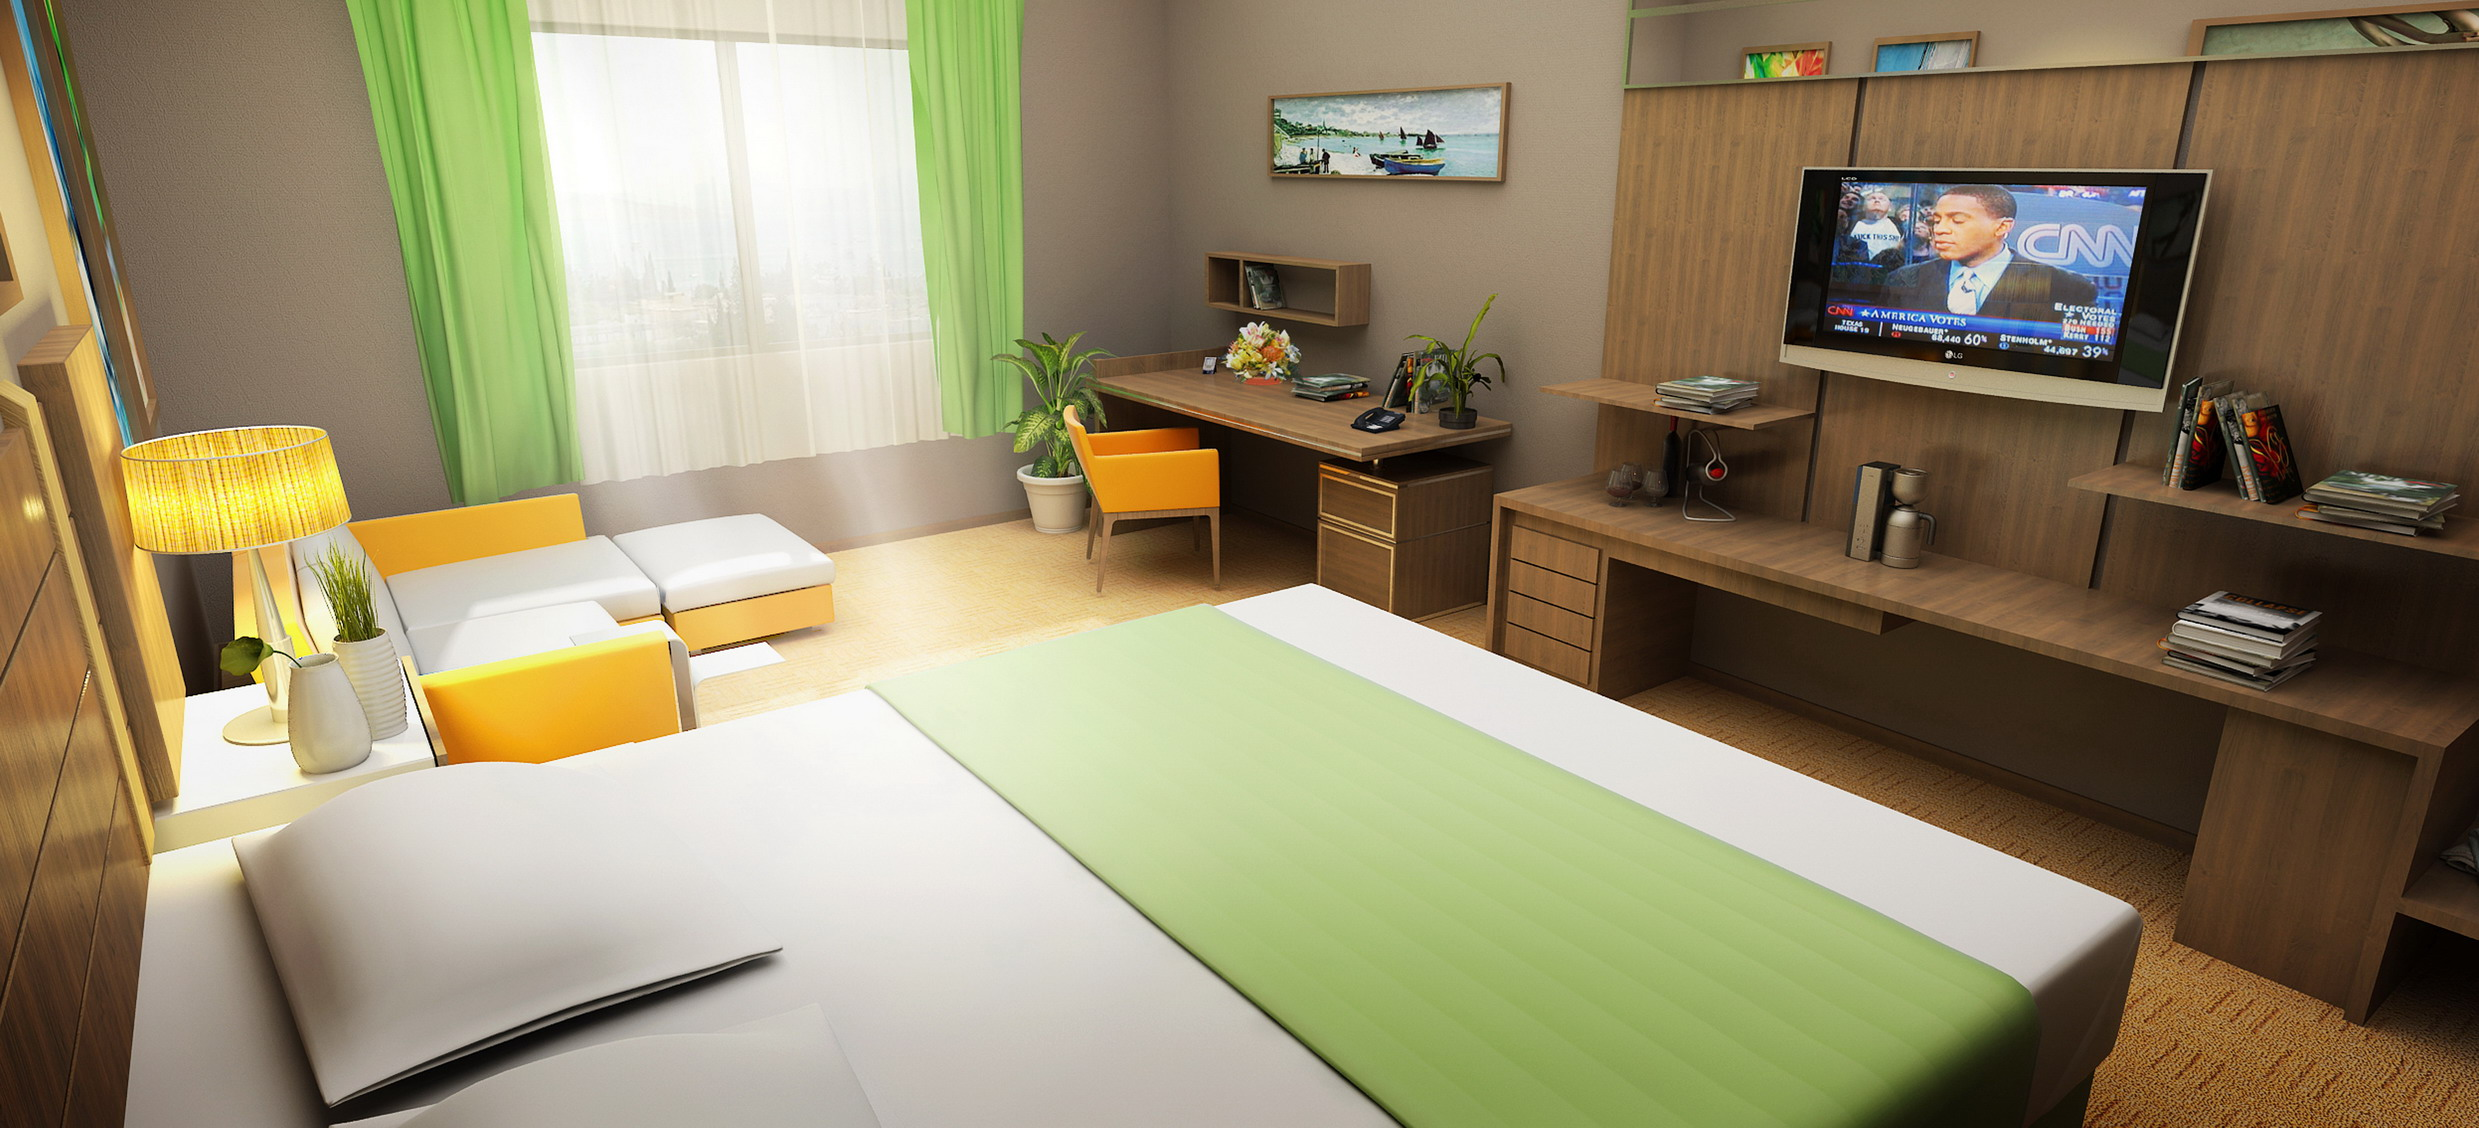 hotel room secondary layout rendering from angle